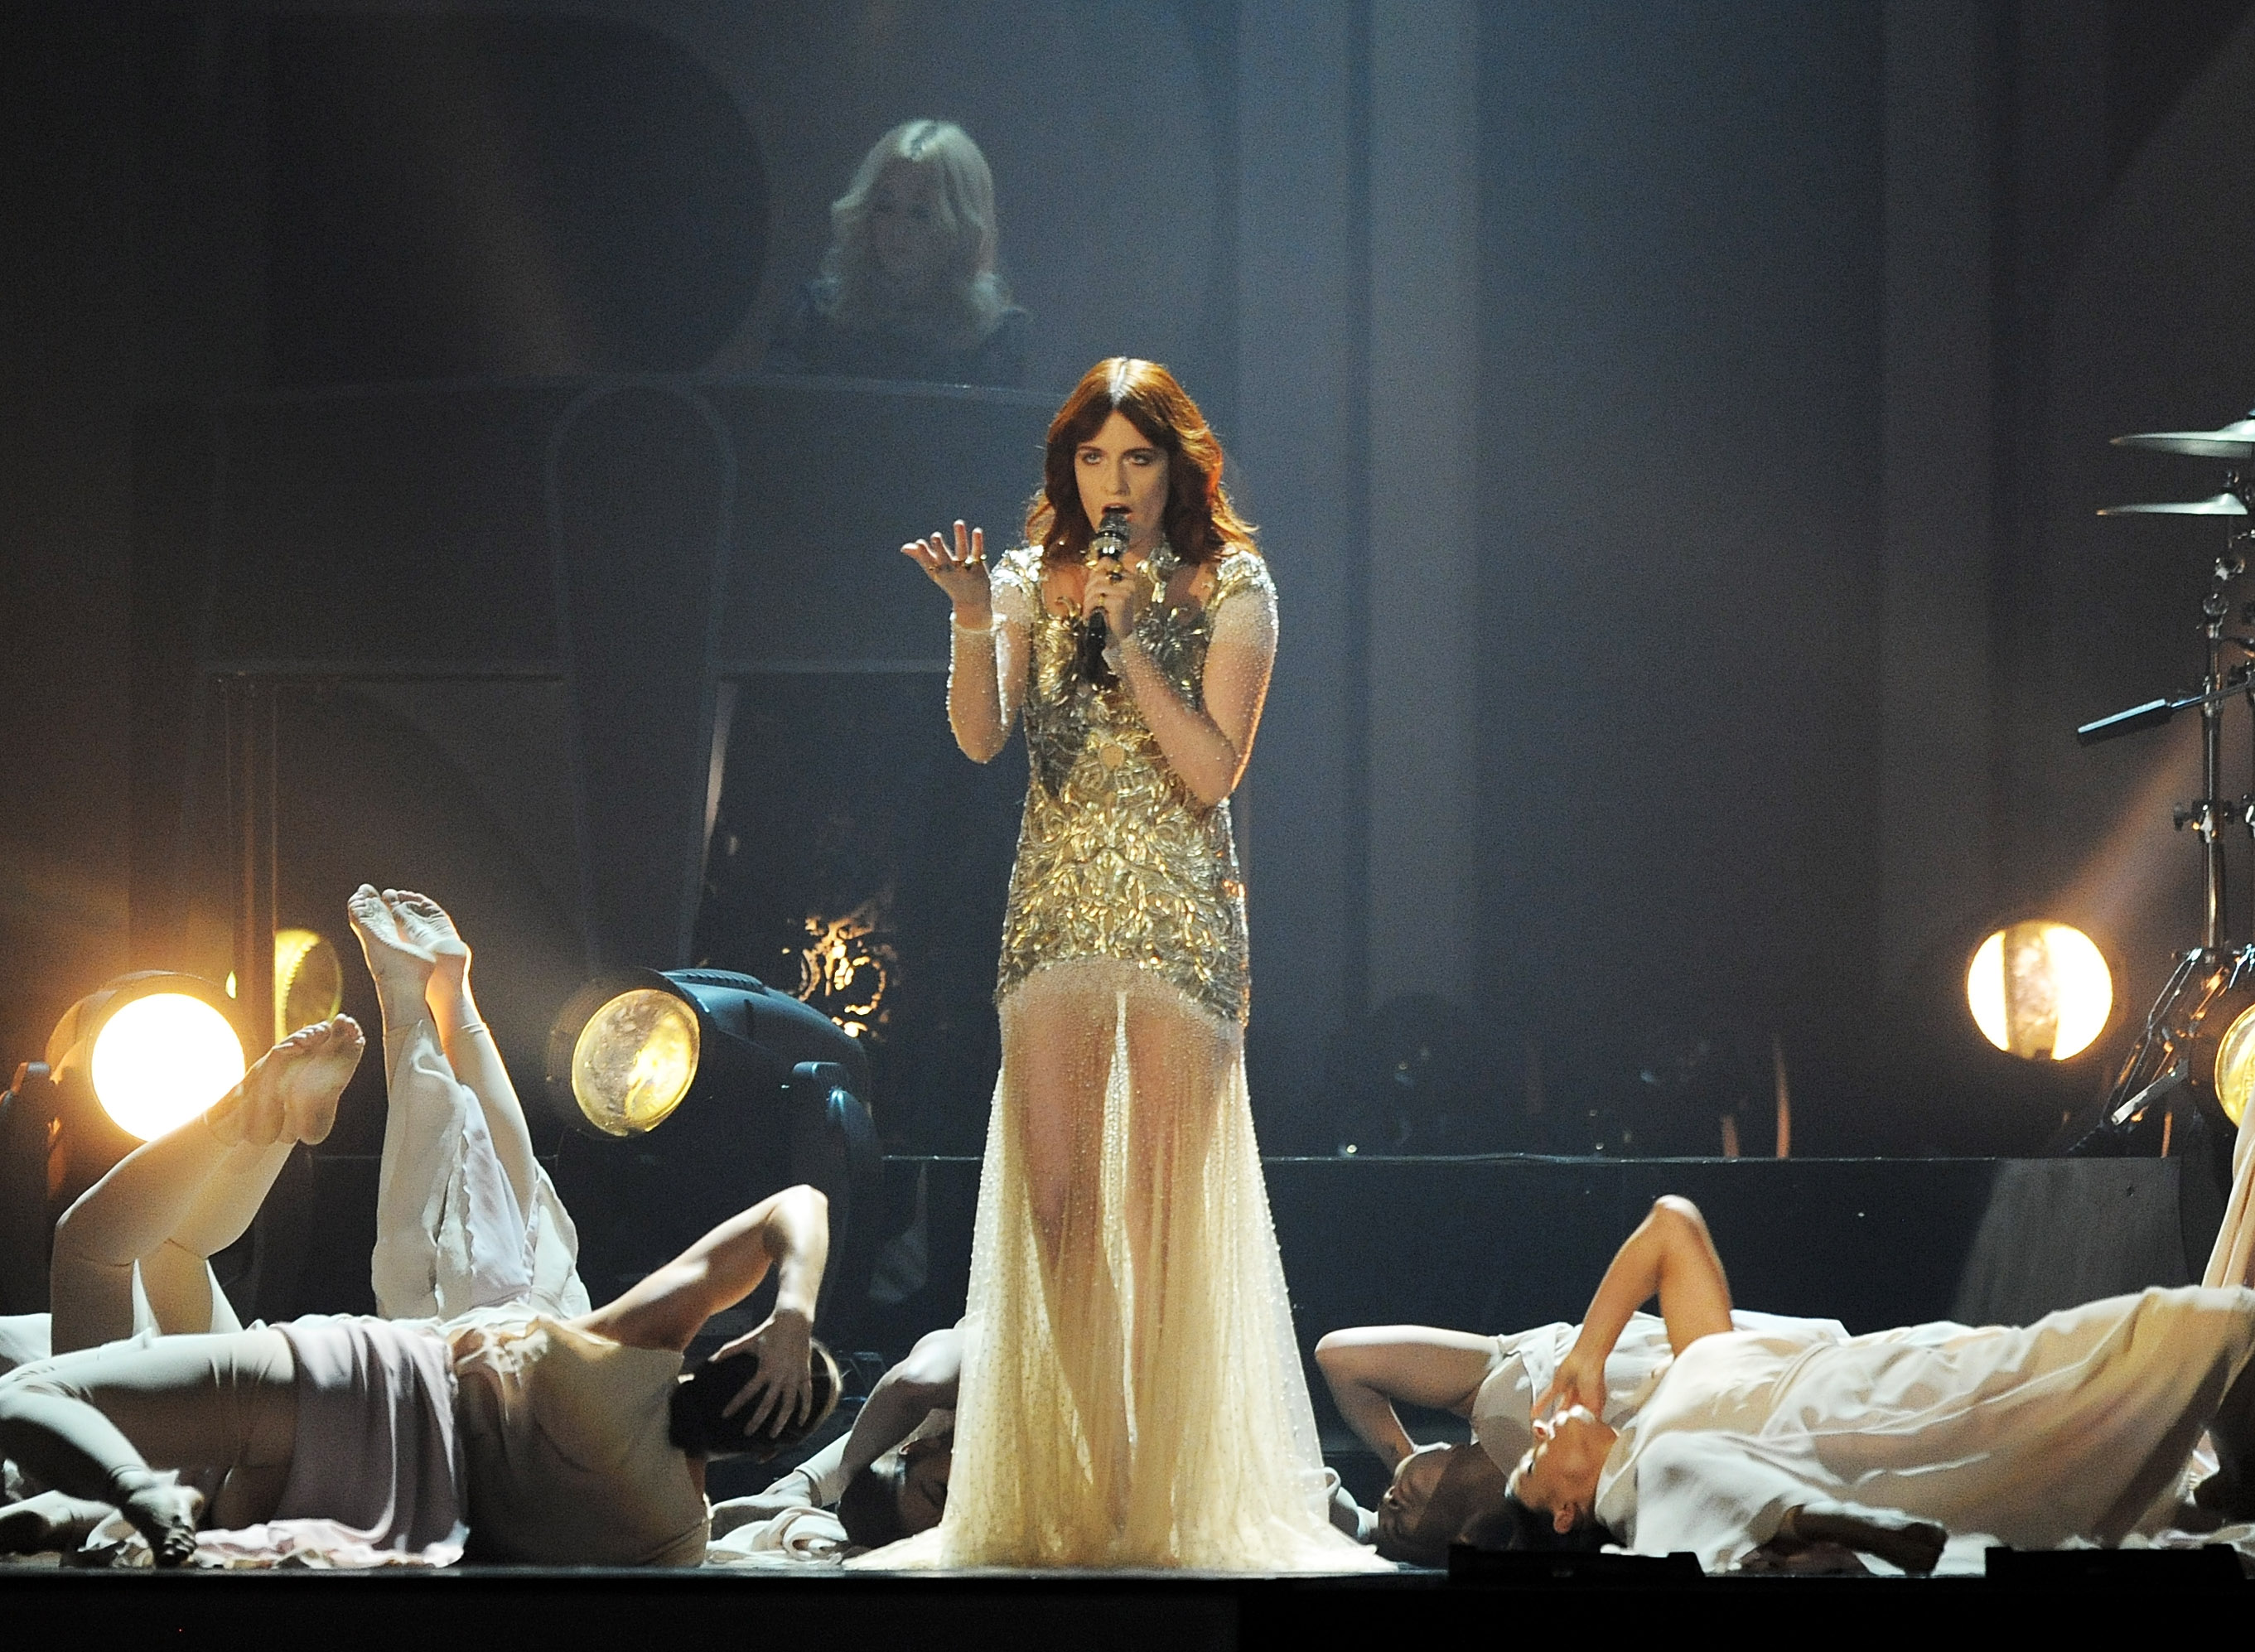 Rihanna, Adele, Coldplay, Bruno Mars, and More Take the Stage and Win Big at the Brit Awards